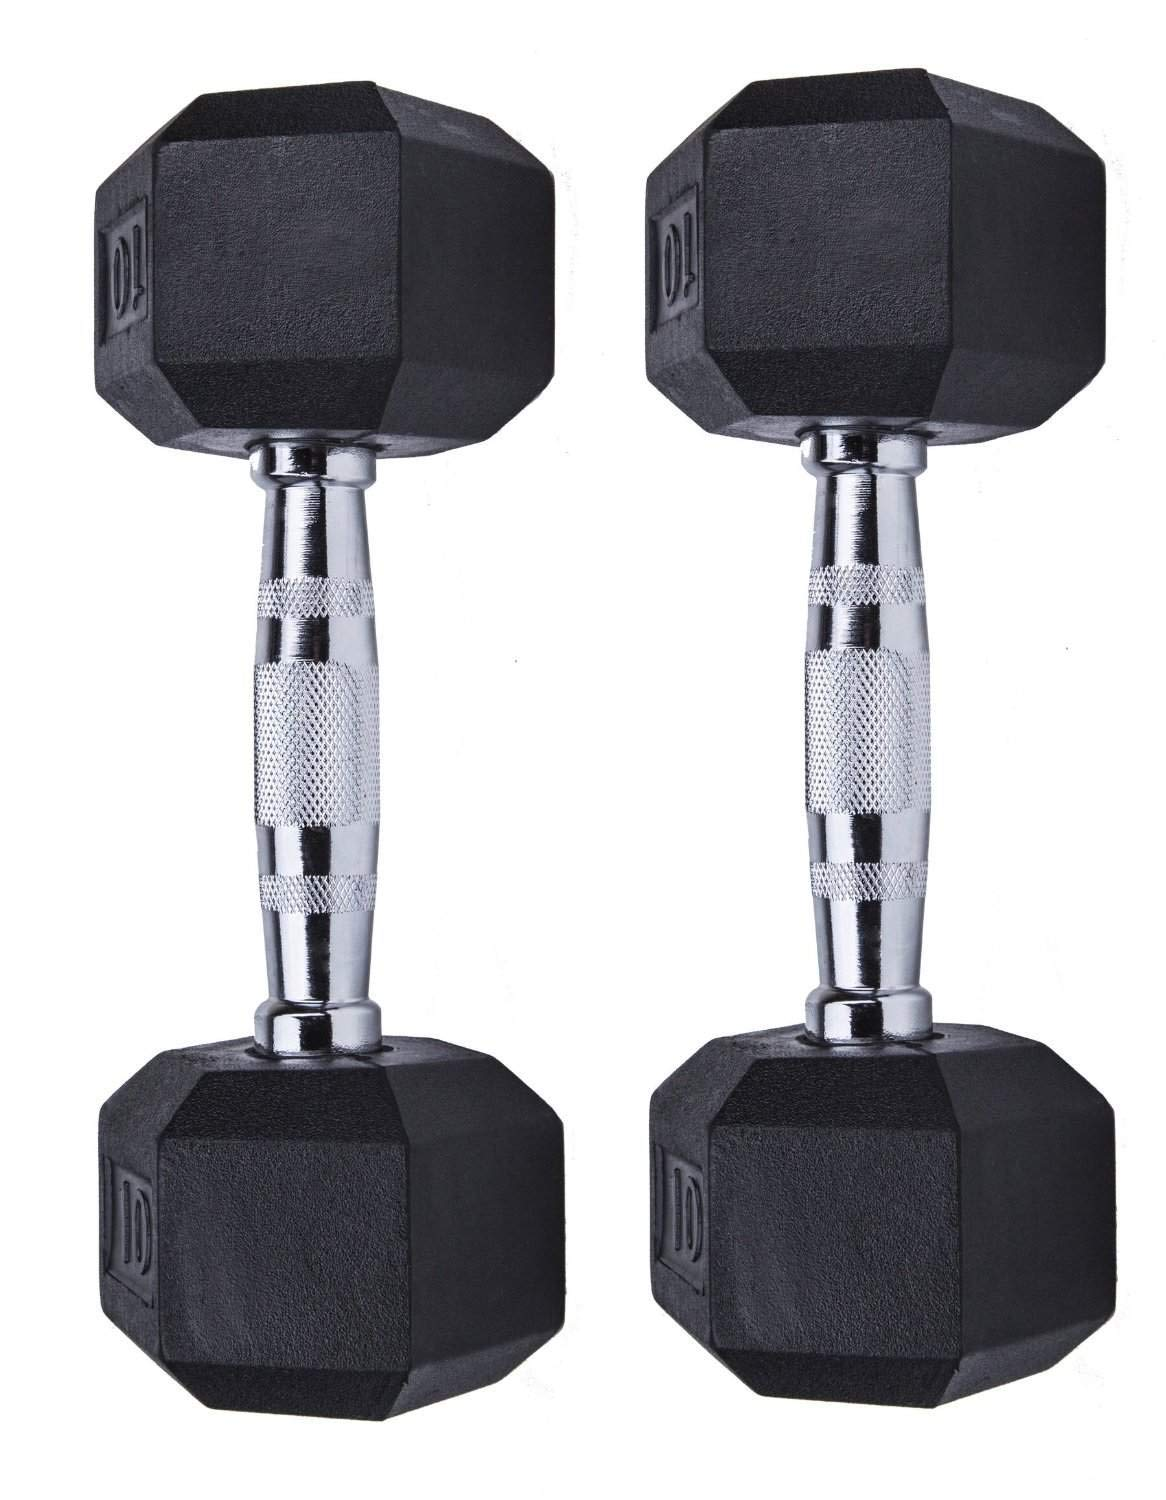 GYMENIST Set of 2 Hex Rubber Dumbbell with Metal Handles, Pair of 2 Heavy Dumbbell Choose Weight (15-LB)